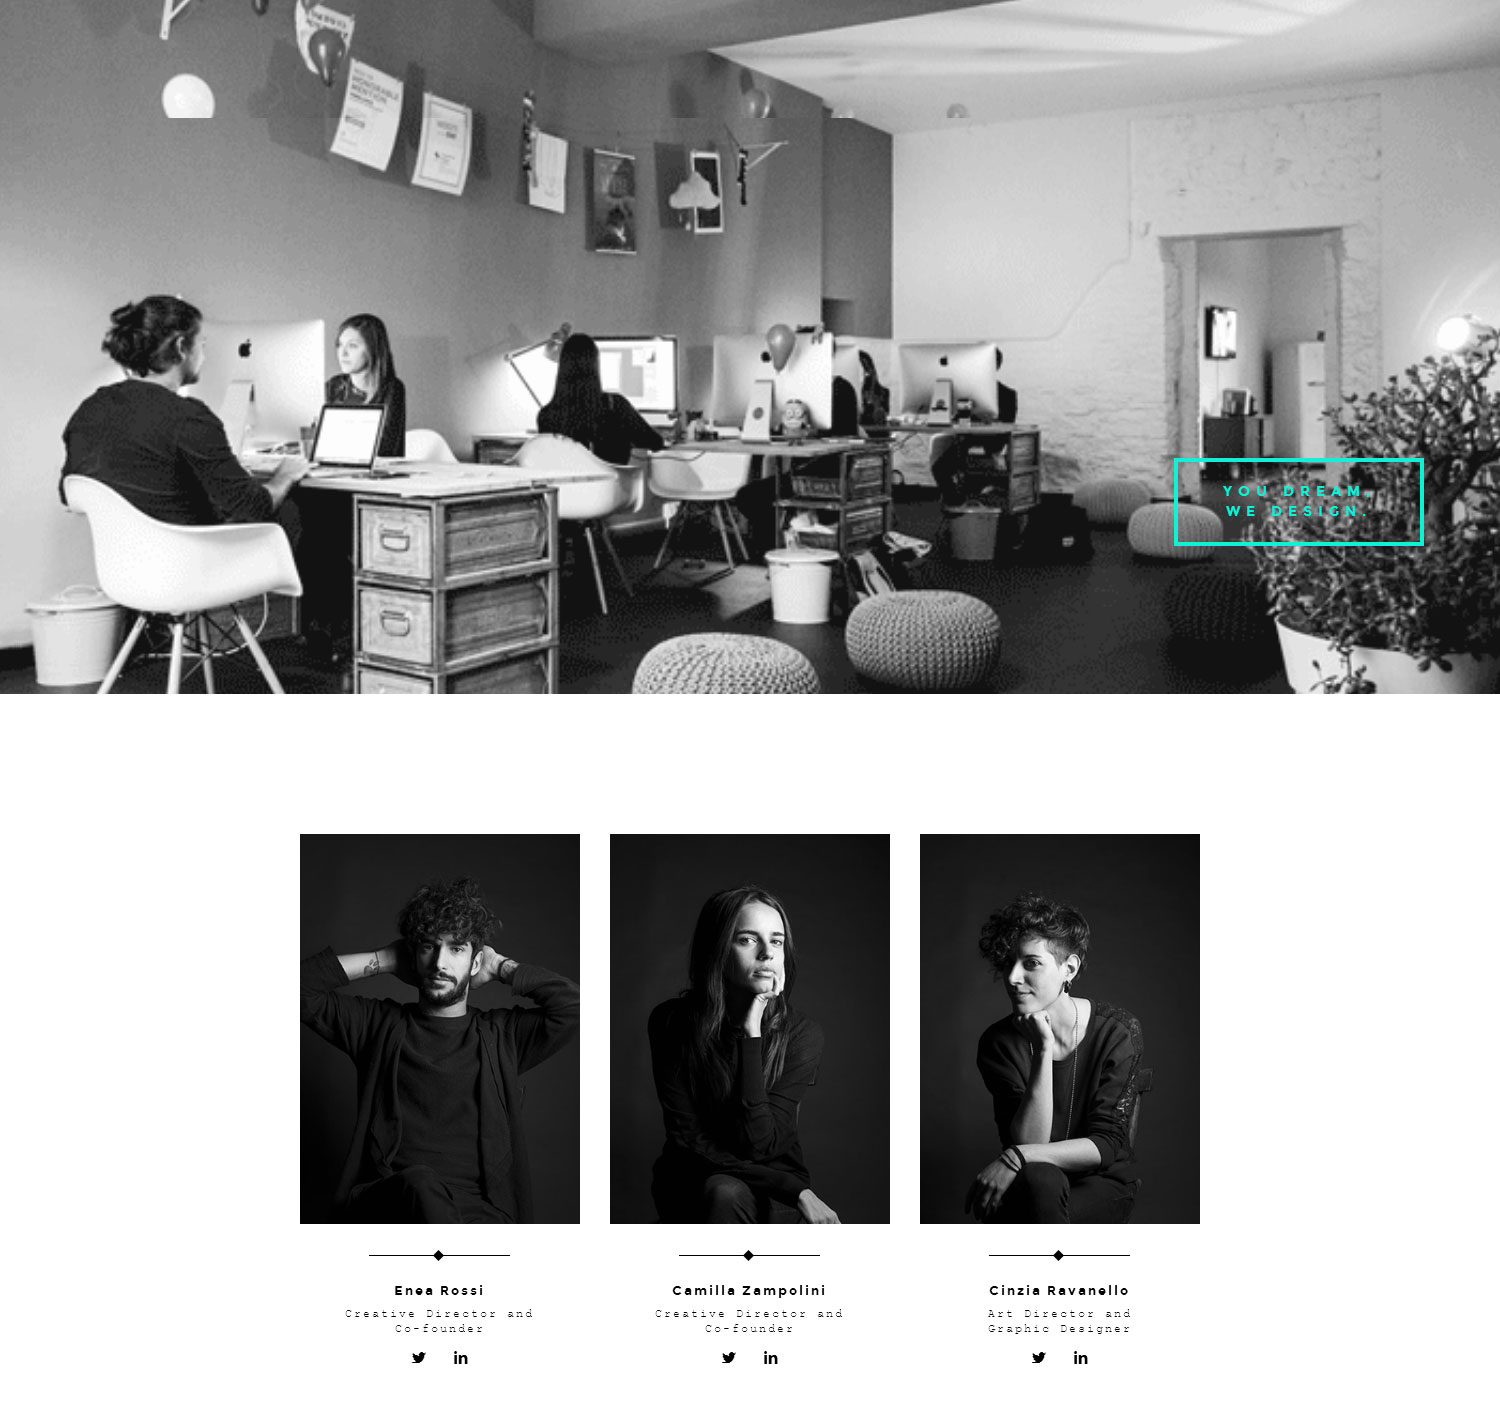 Adoratorio - Website of the Day